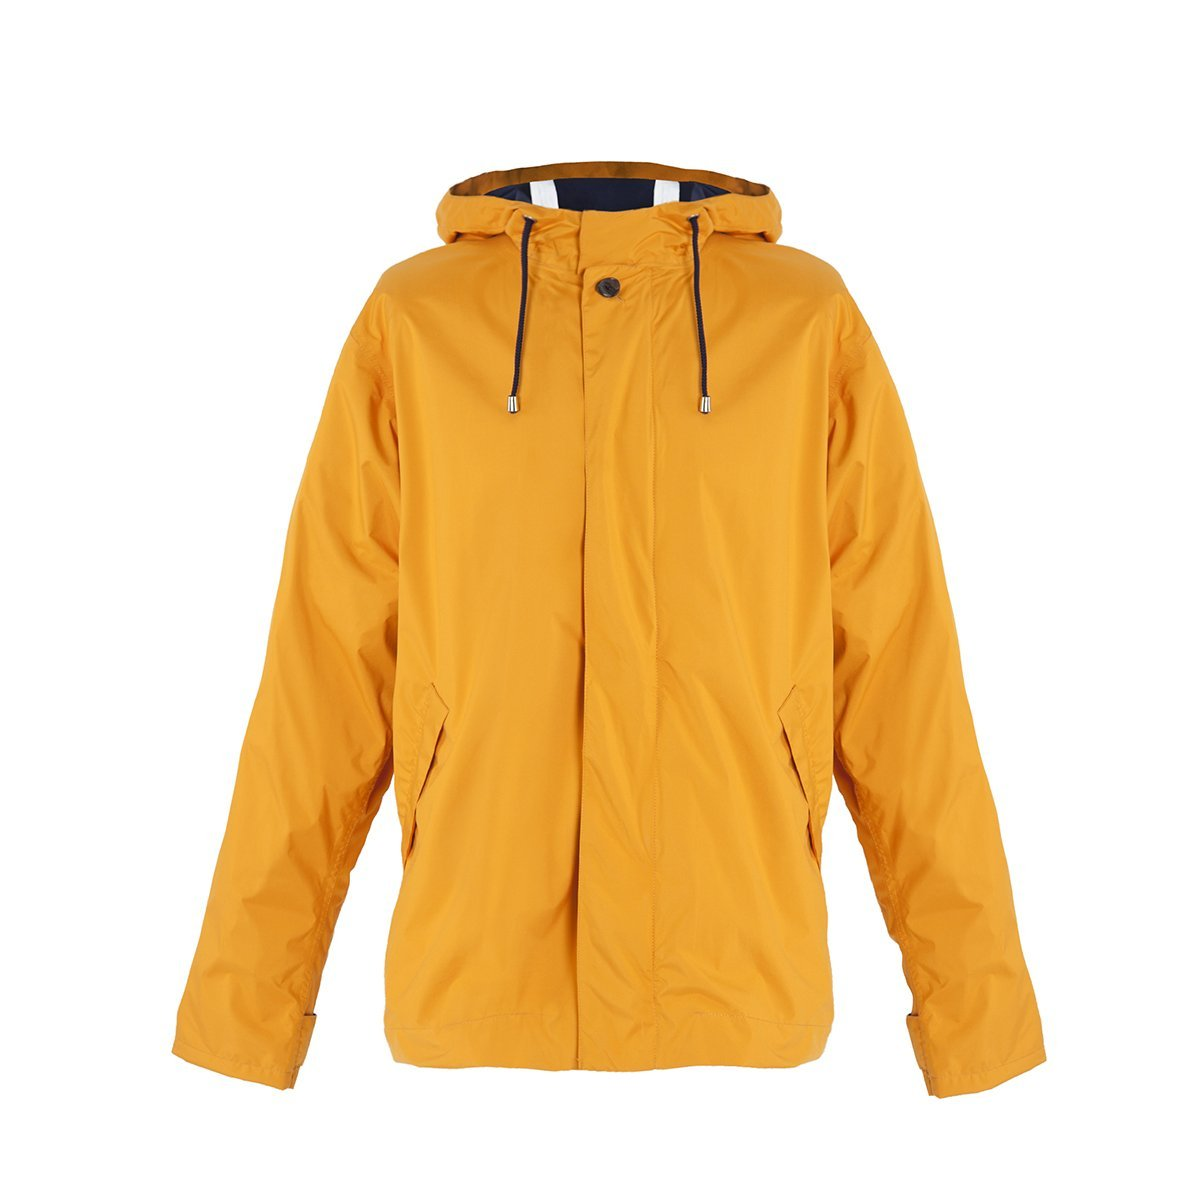 Meander | Meander Jacket | Waterproof Breathable Unisex Cycling Jacket | Orange